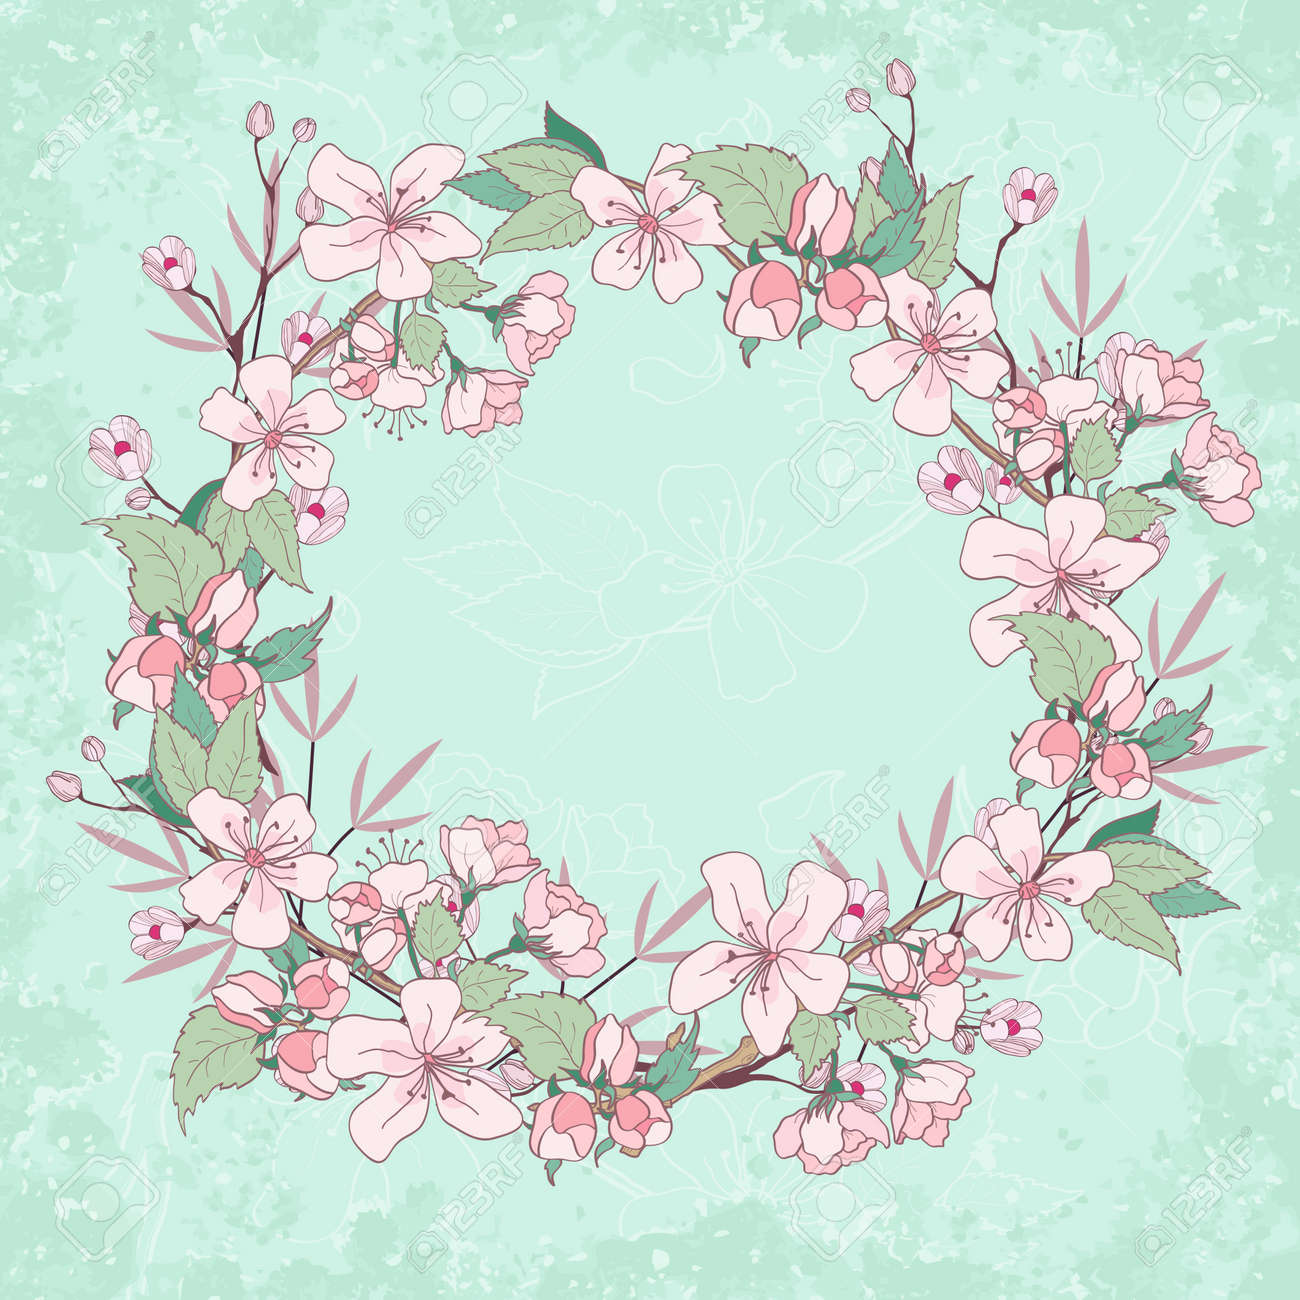 Apple Blossom Wreath Beautiful Spring Floral Background Royalty